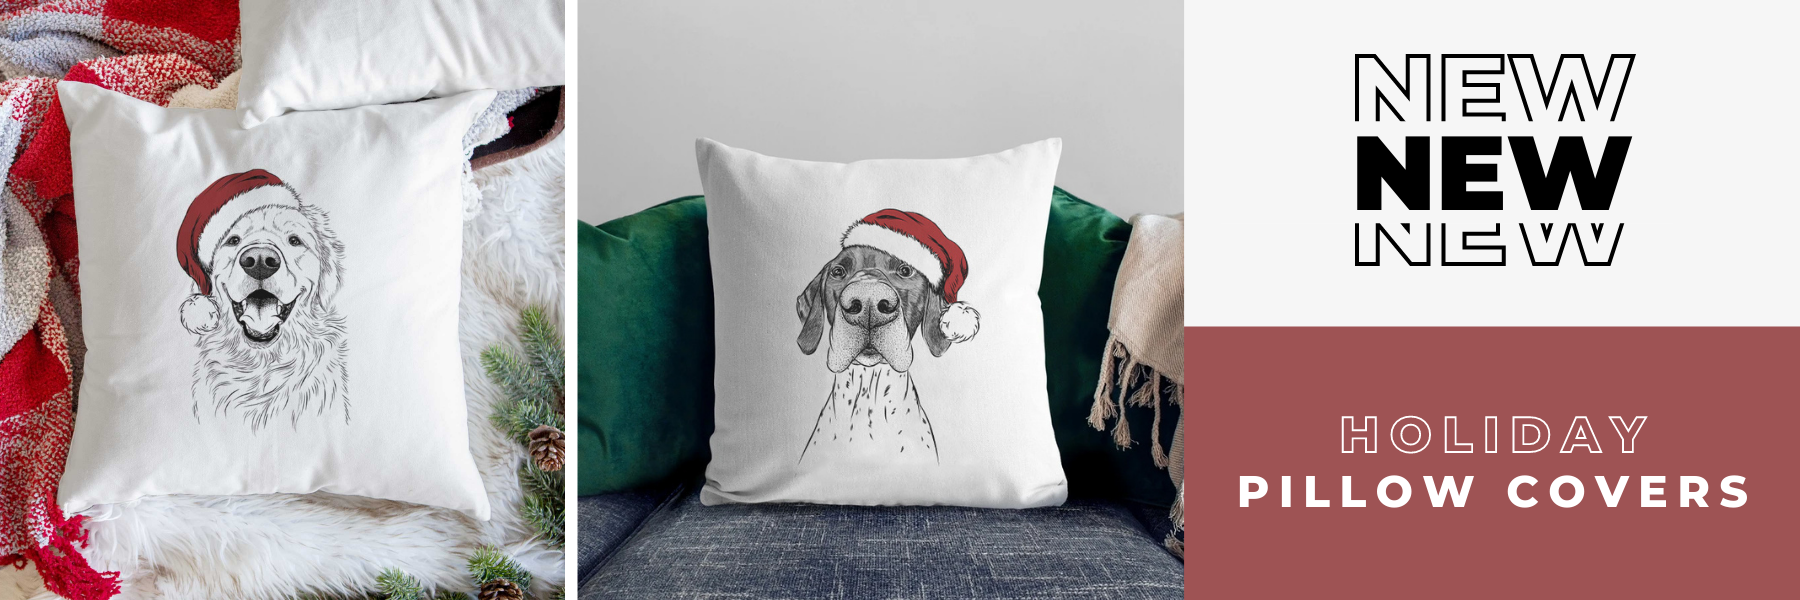 NEW HOLIDAY PILLOW COVERS